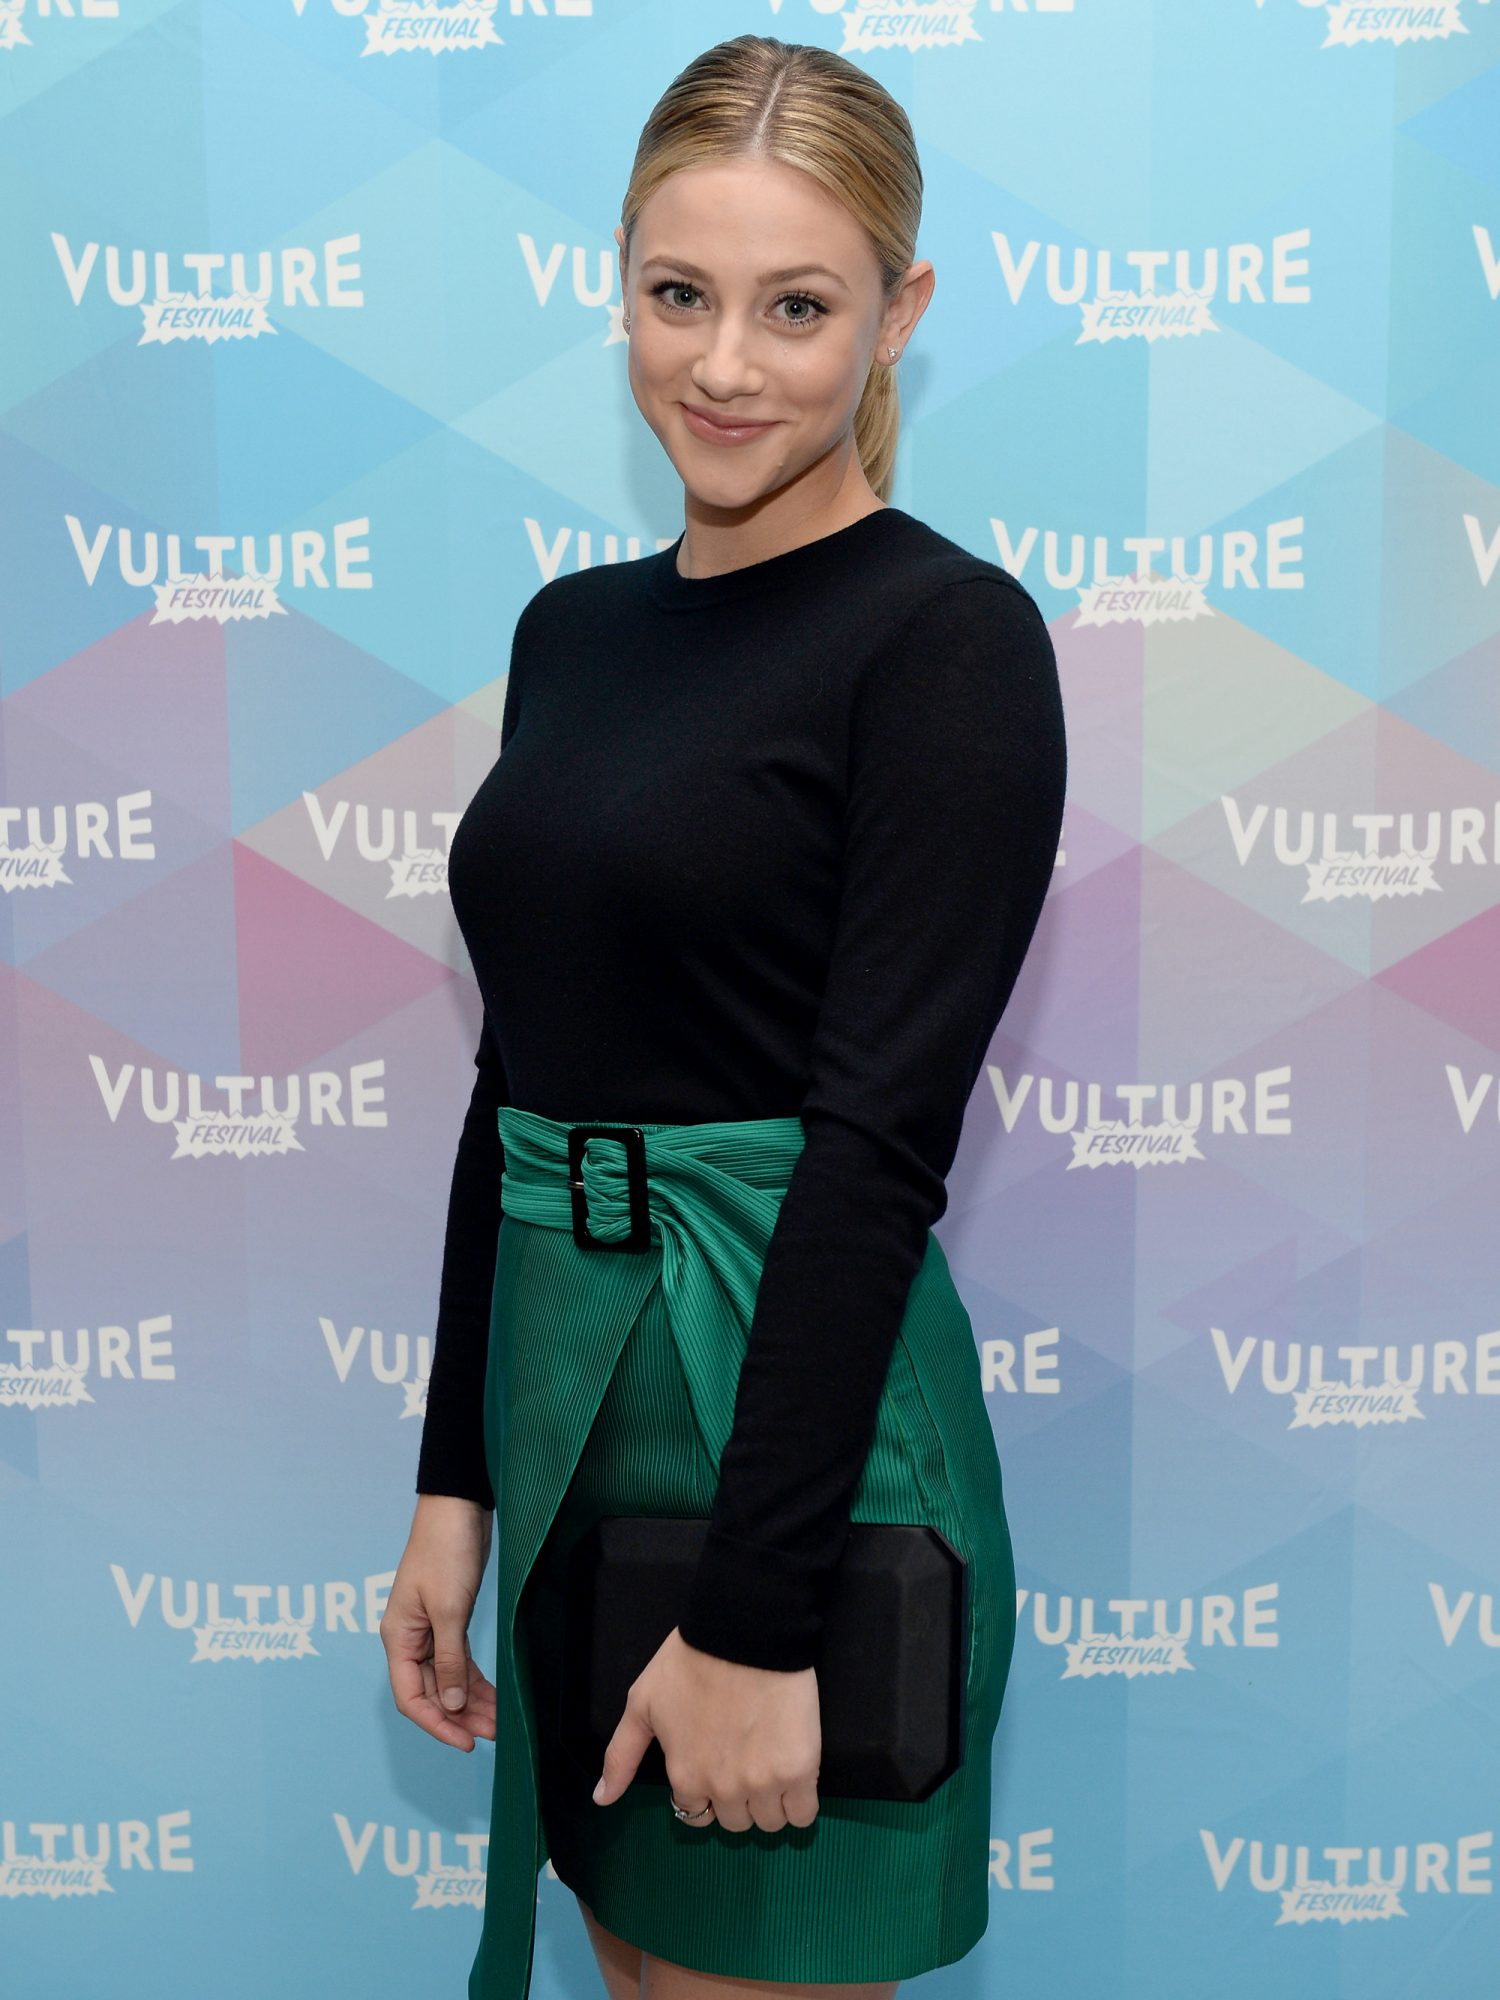 Lili Reinhart Gets Candid About Battling Anxiety Before Landing <em>Riverdale</em>